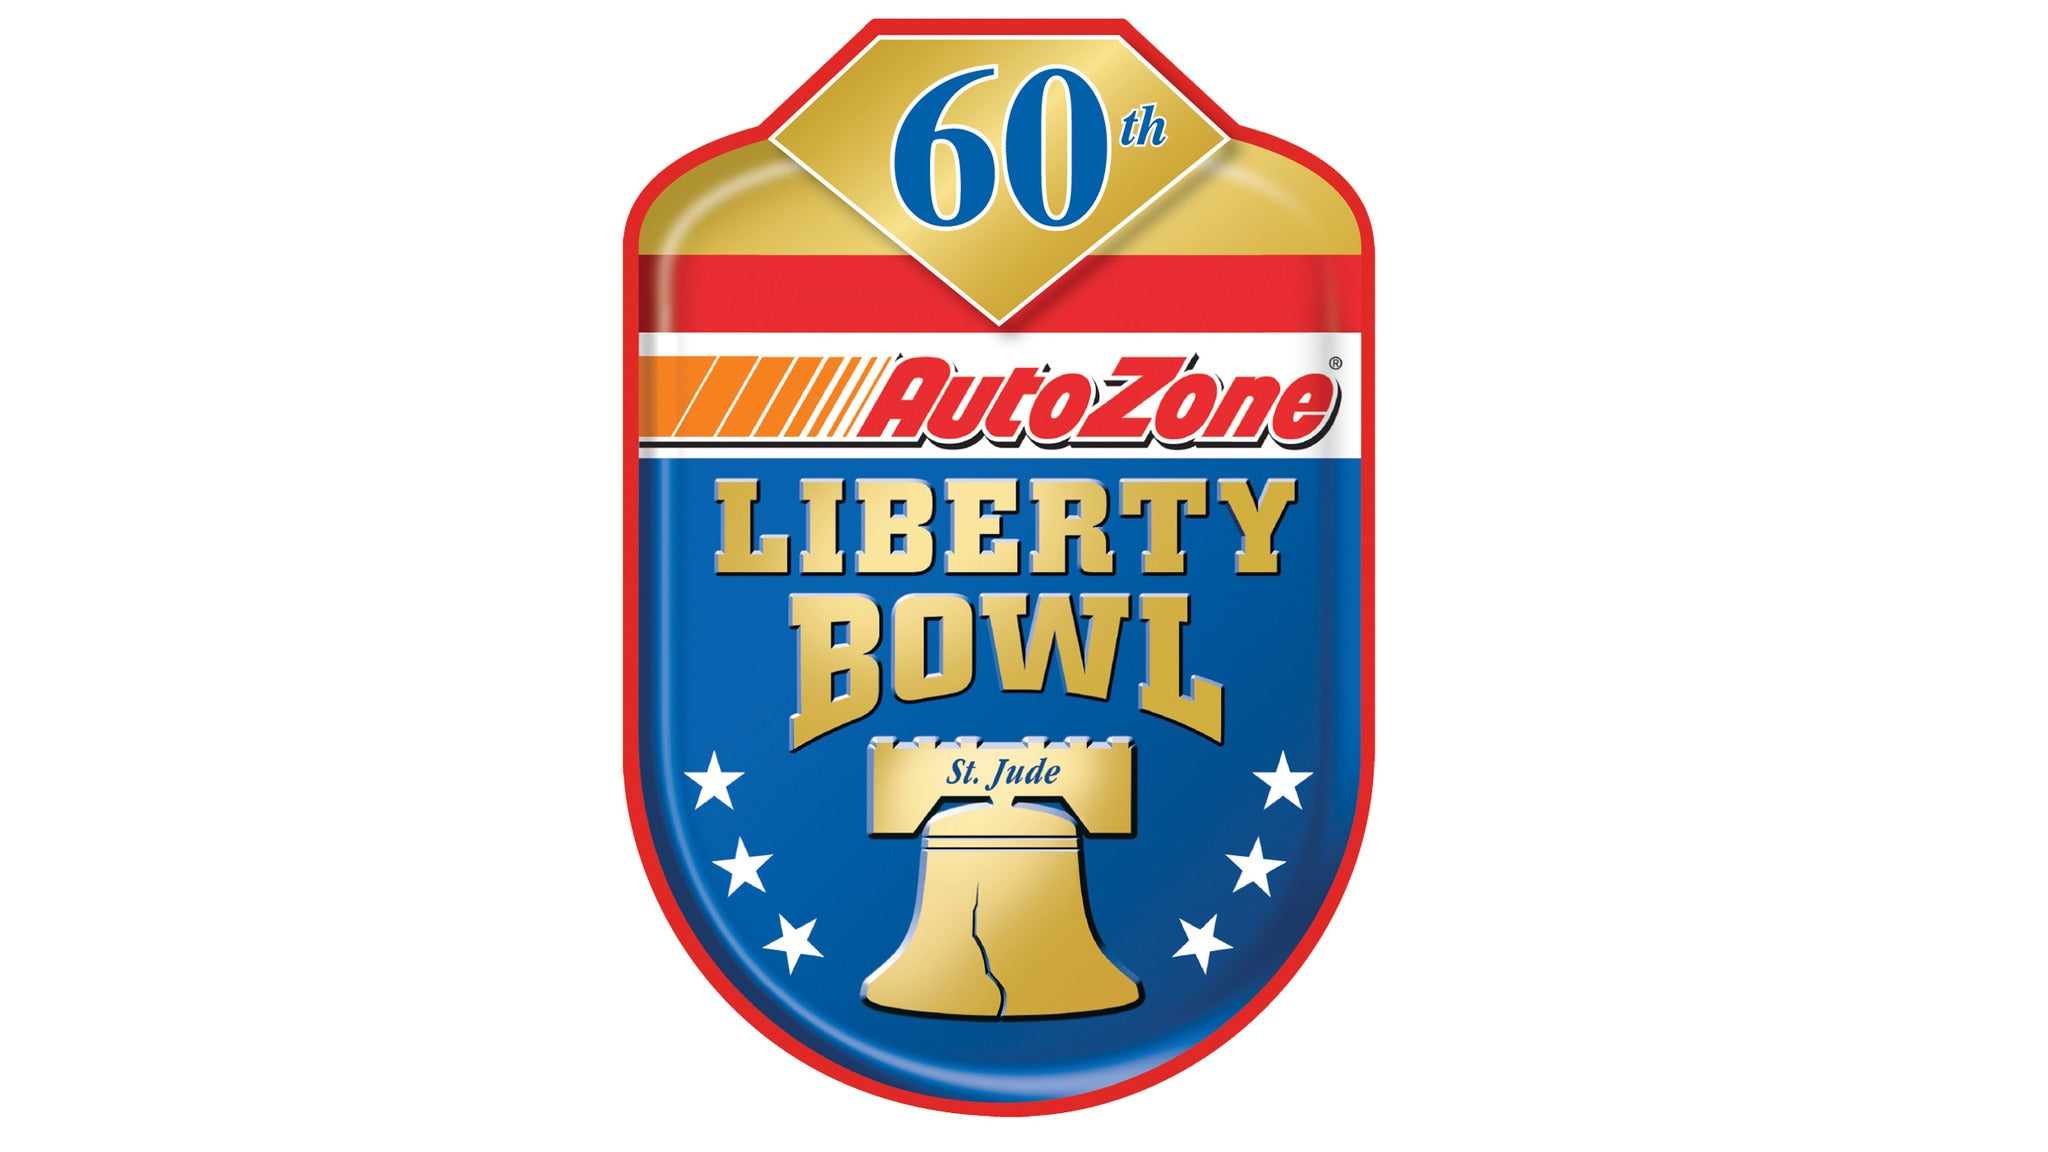 61st AutoZone Liberty Bowl at Liberty Bowl Stadium